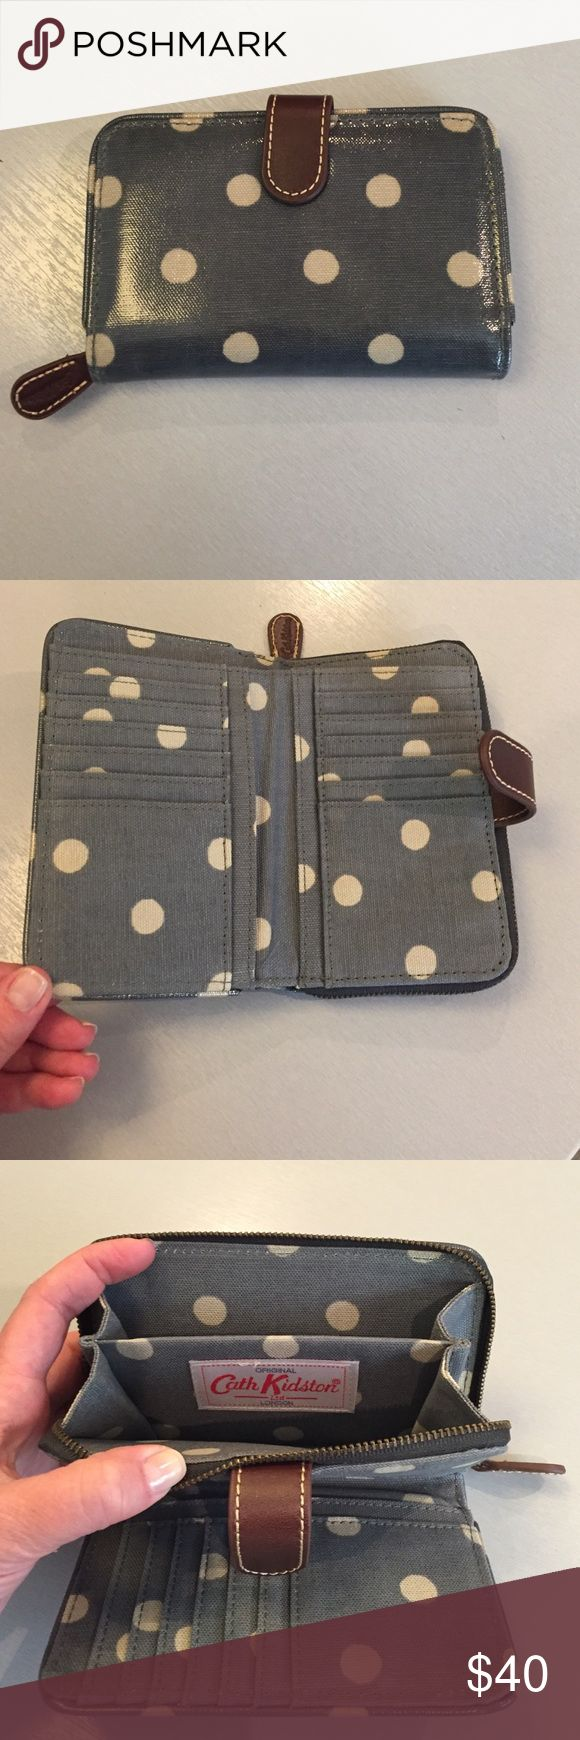 Cath Kidston button spot folded zip wallet Classic, retro designed wallet by Cath Kidston of London.  Perfectly proportioned with an assortment of slots and pockets for your cards, coins and cash!  Retro spot gives it extra appeal! Cath Kidston Bags Wallets